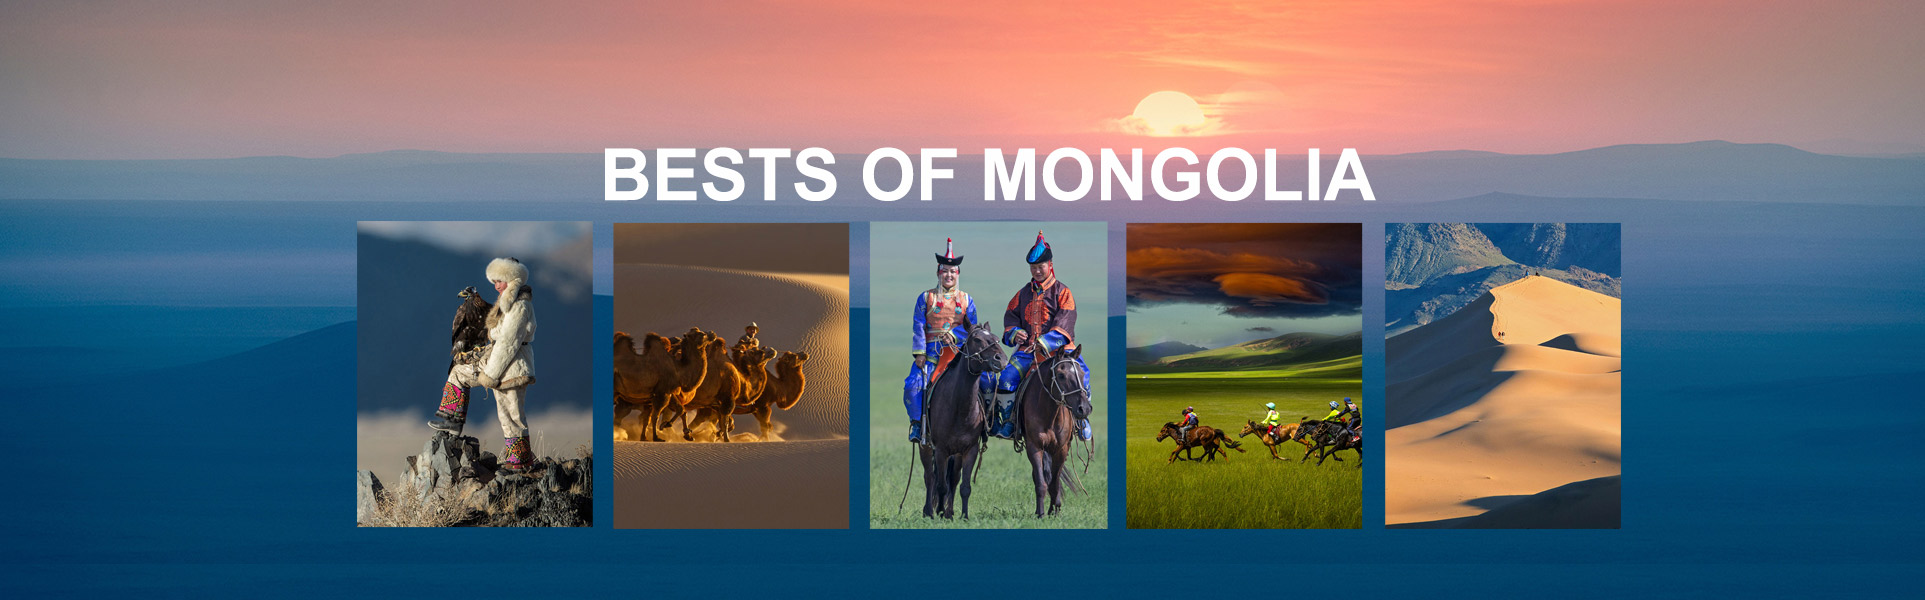 bests_of_mongolia_ayan_travel_mongolia